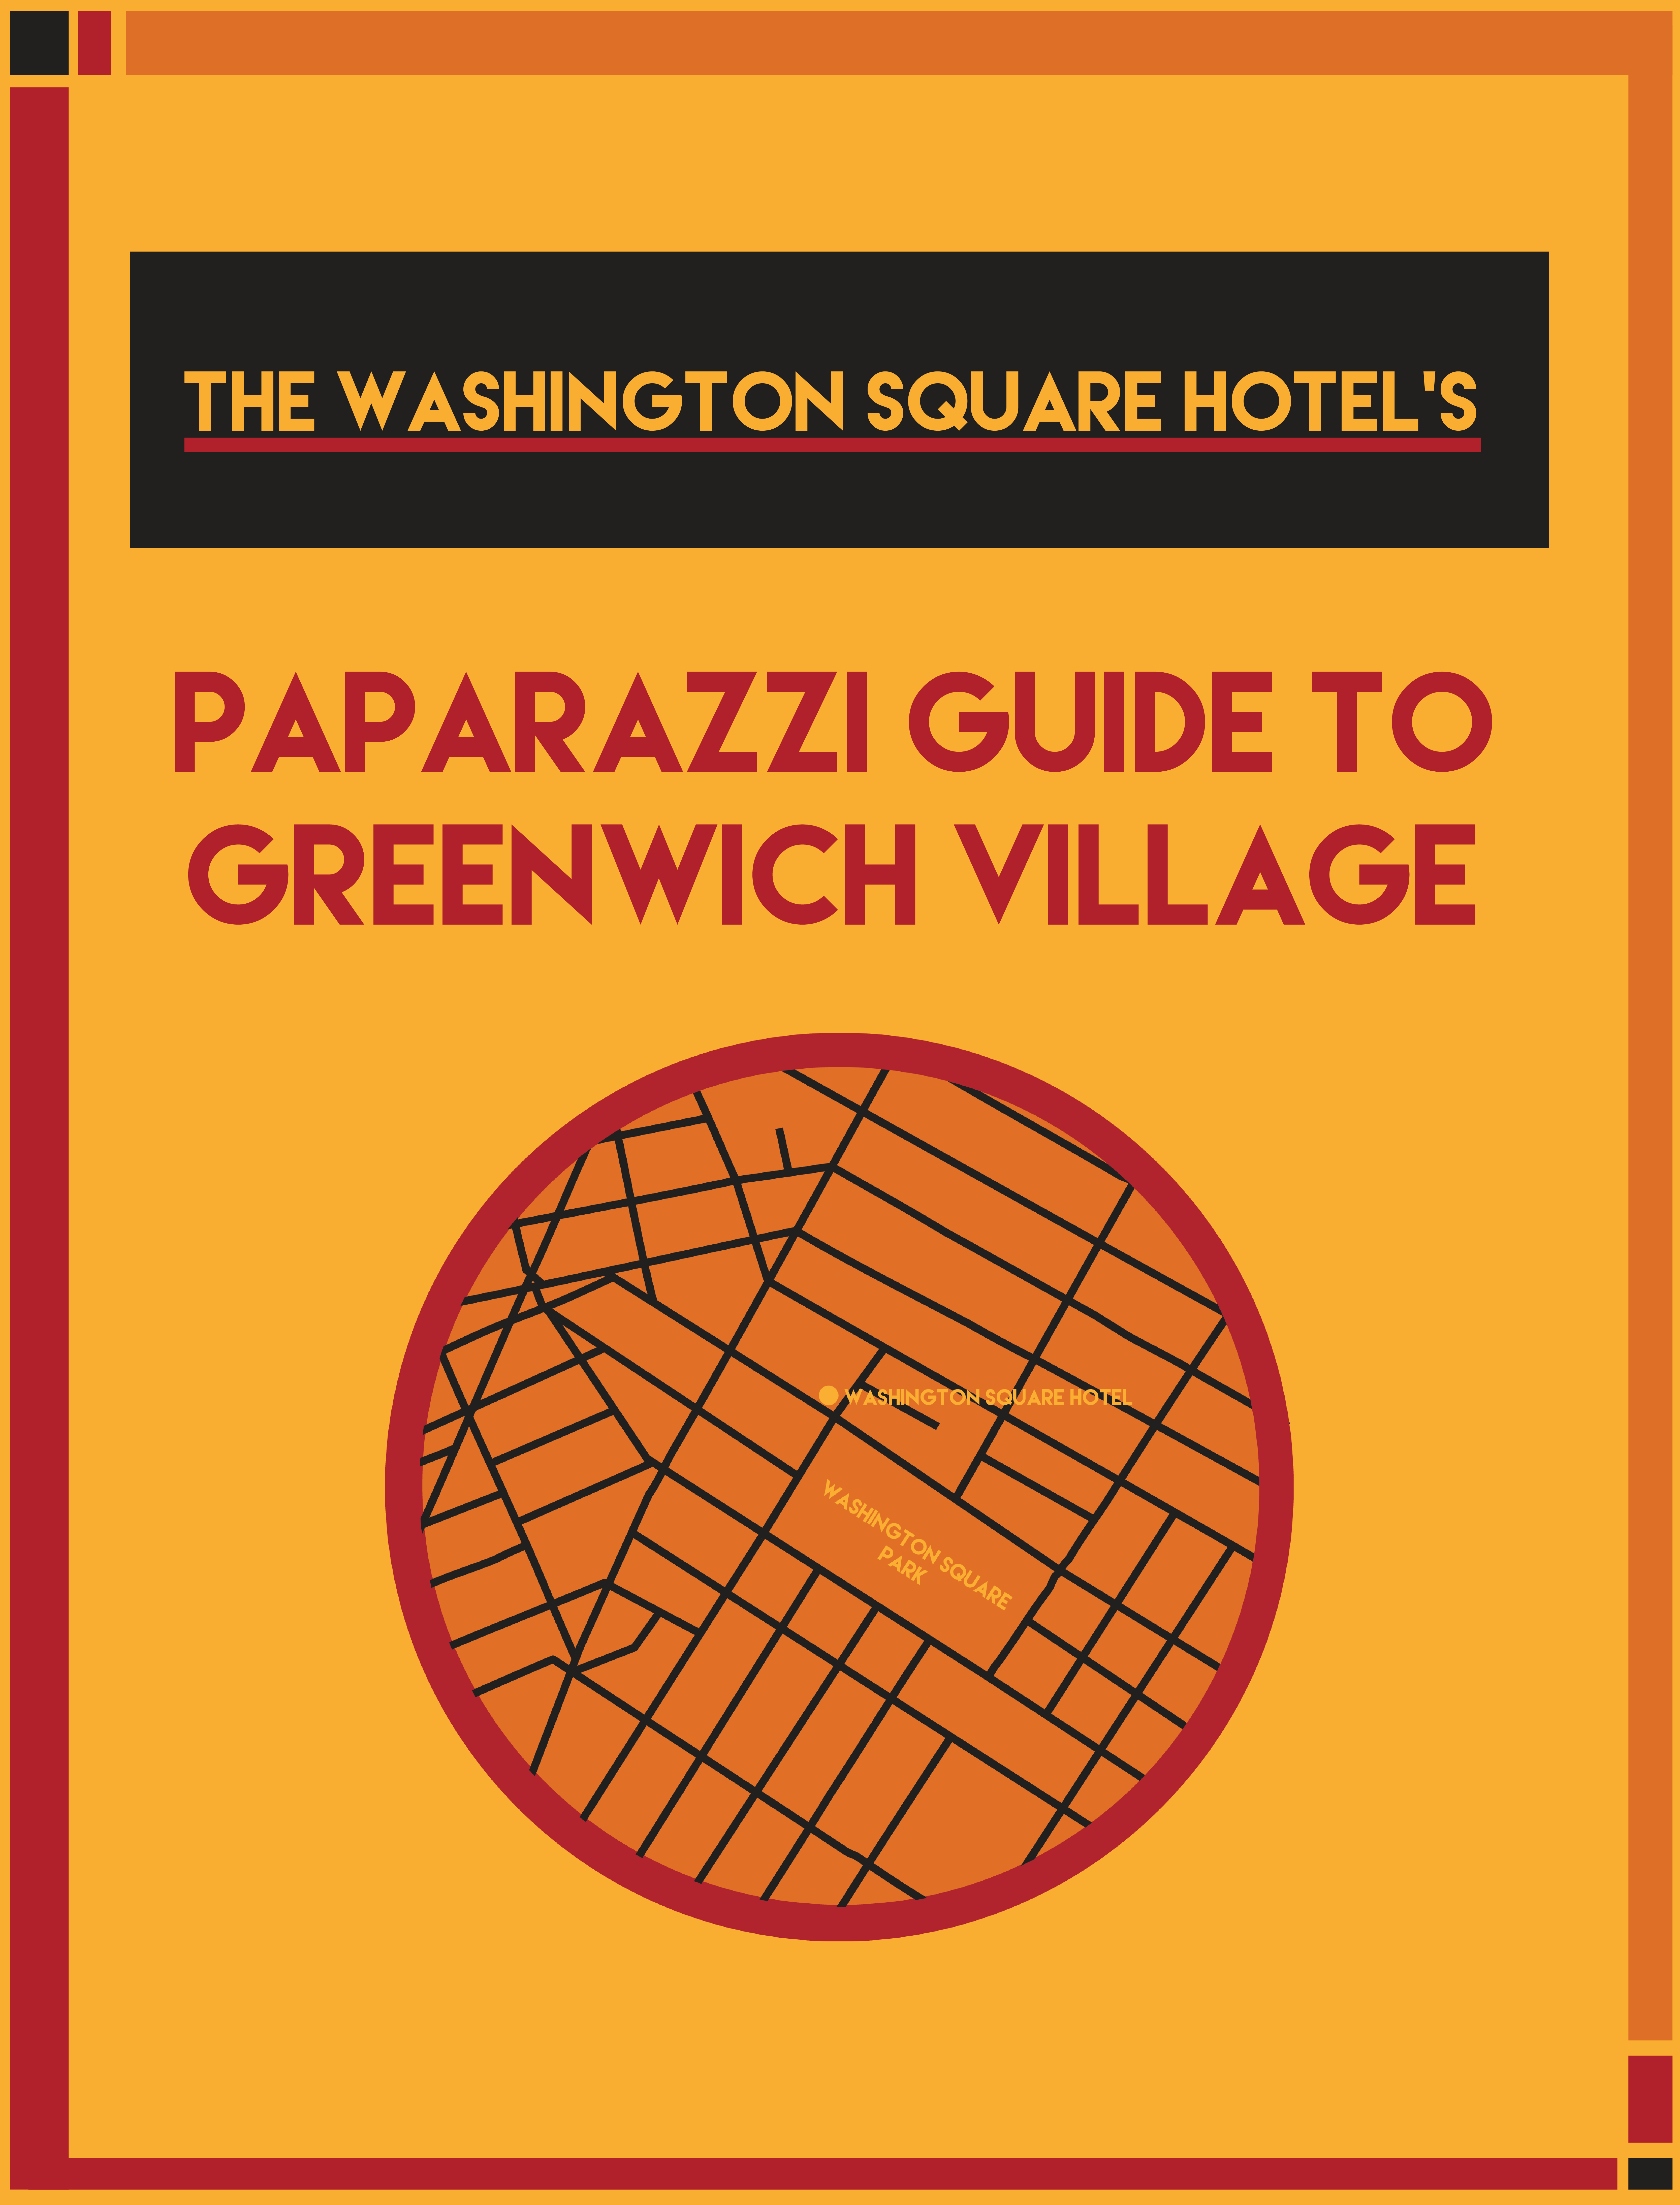 Paparazzi_Guide_Cover_NEW.png